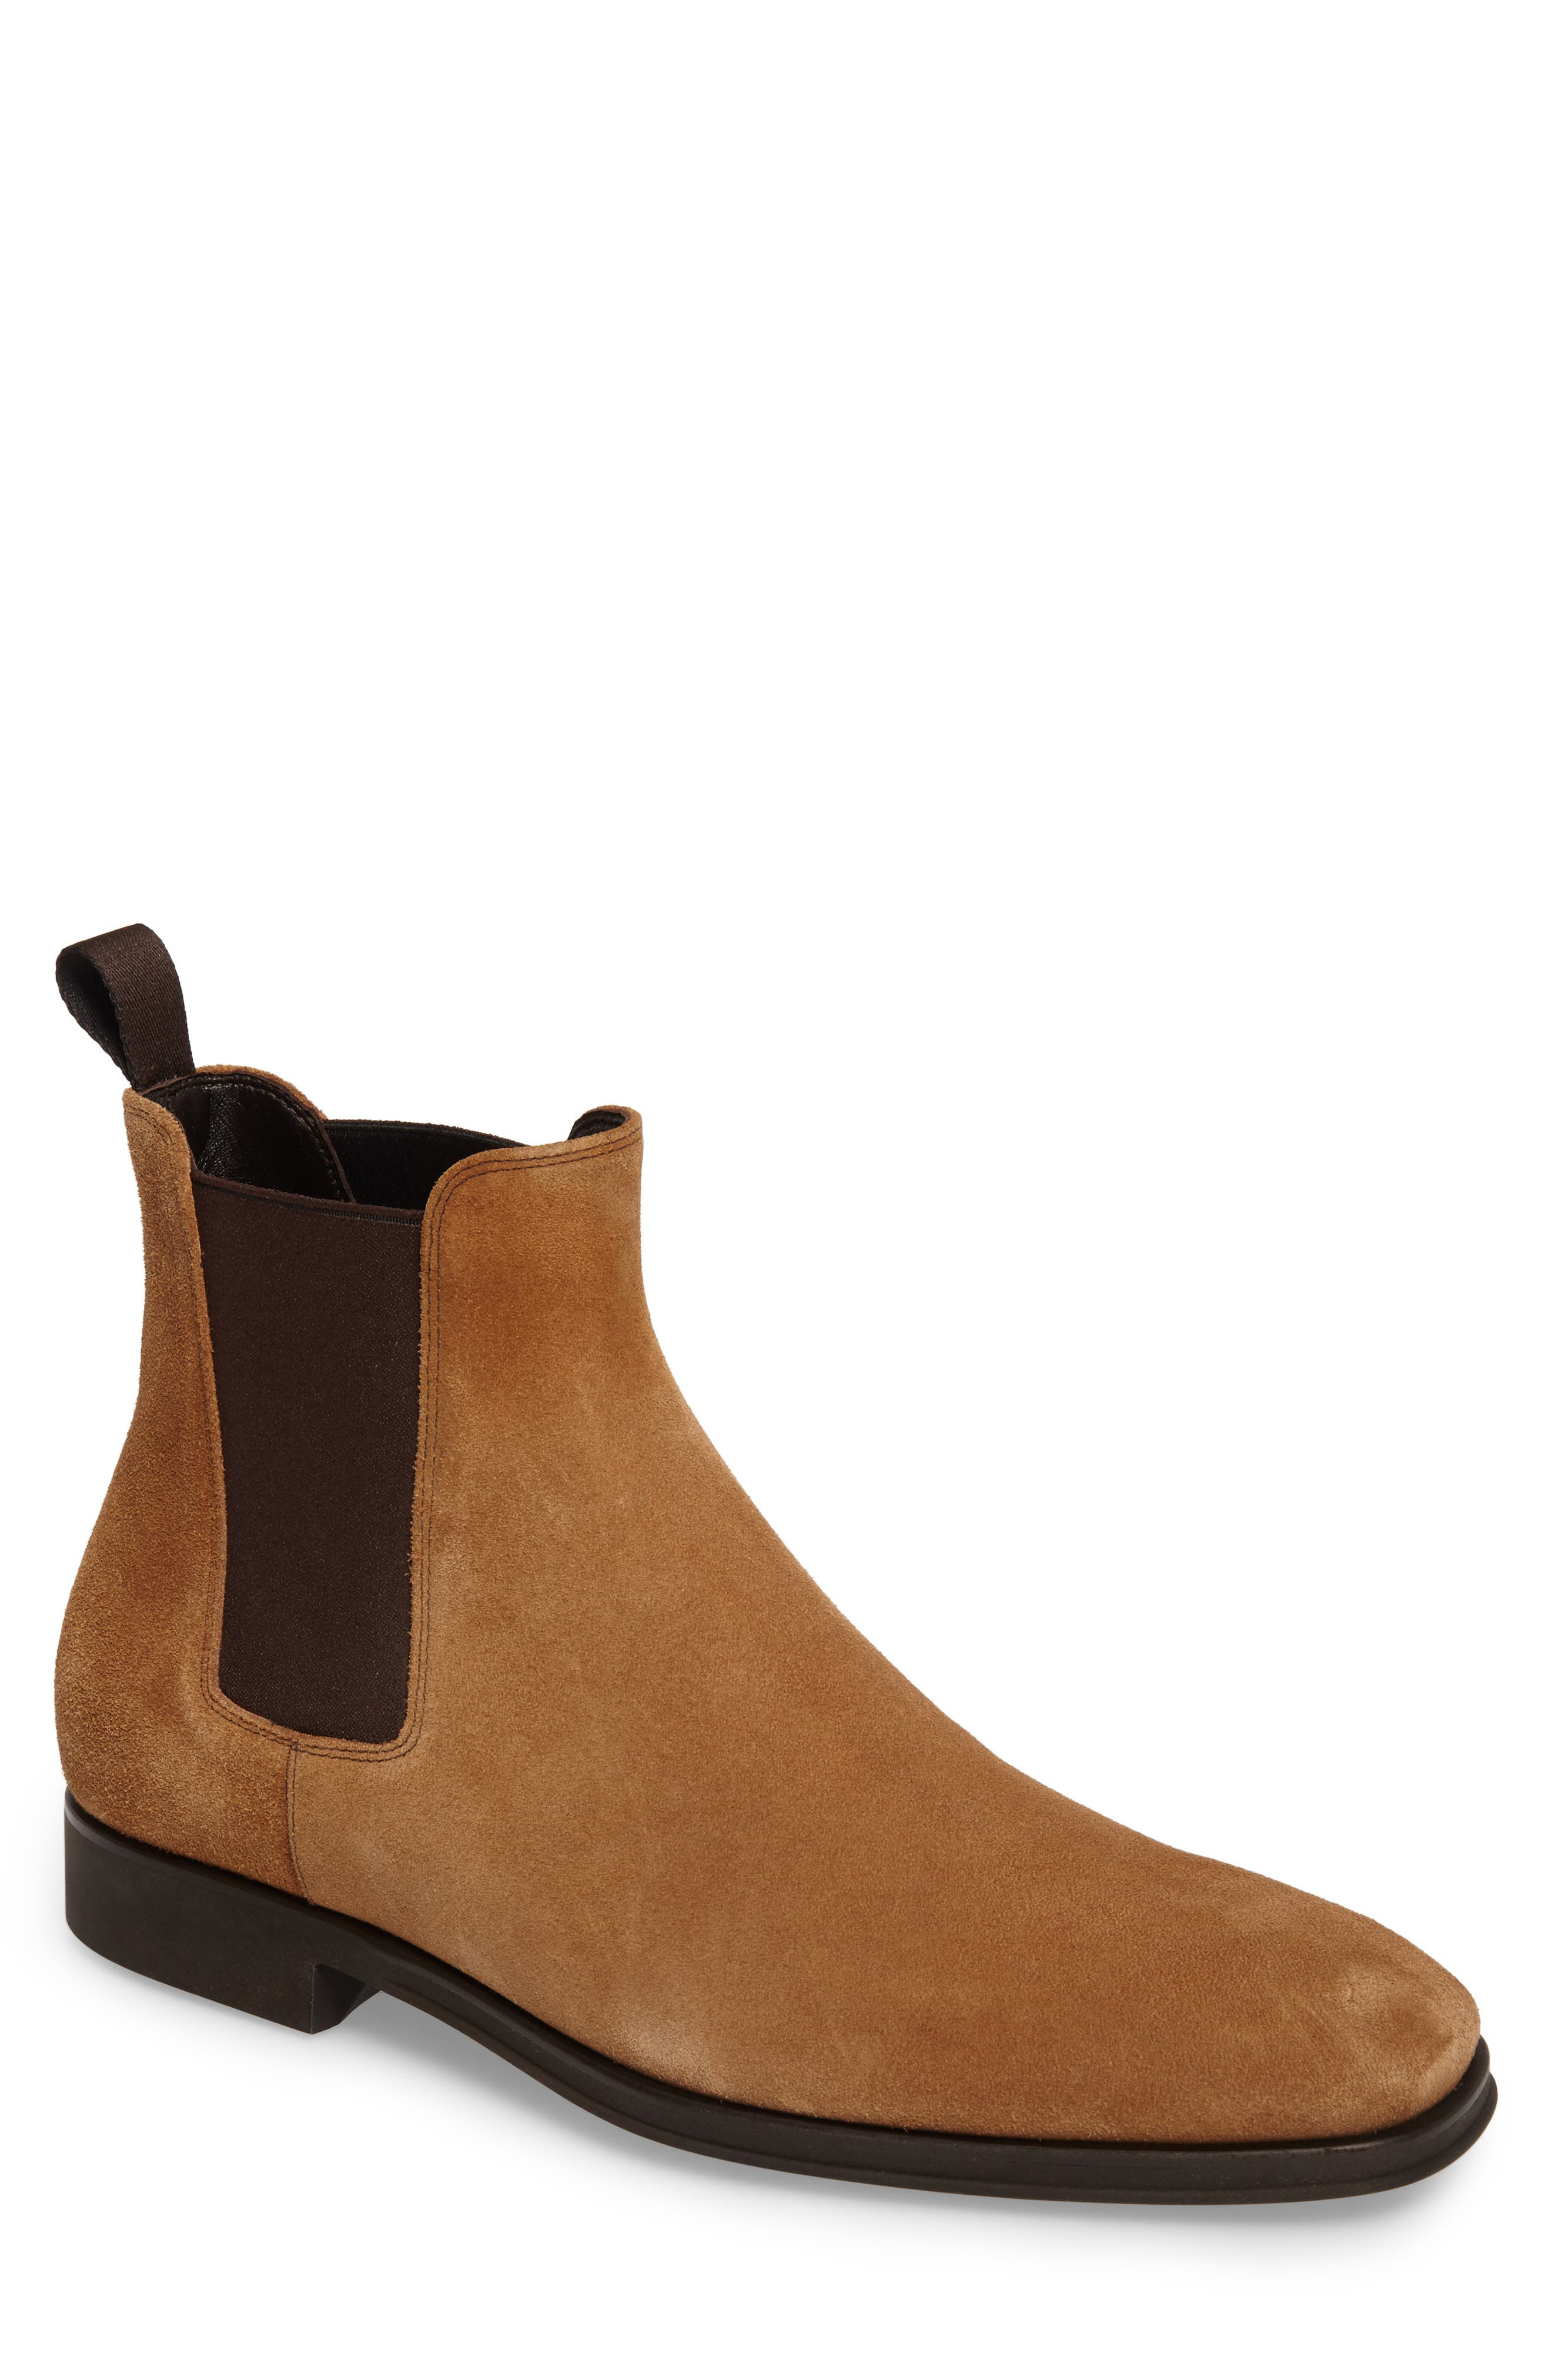 Monte Rosso Enrico Chelsea Boot (Men) (Nordstrom Exclusive)